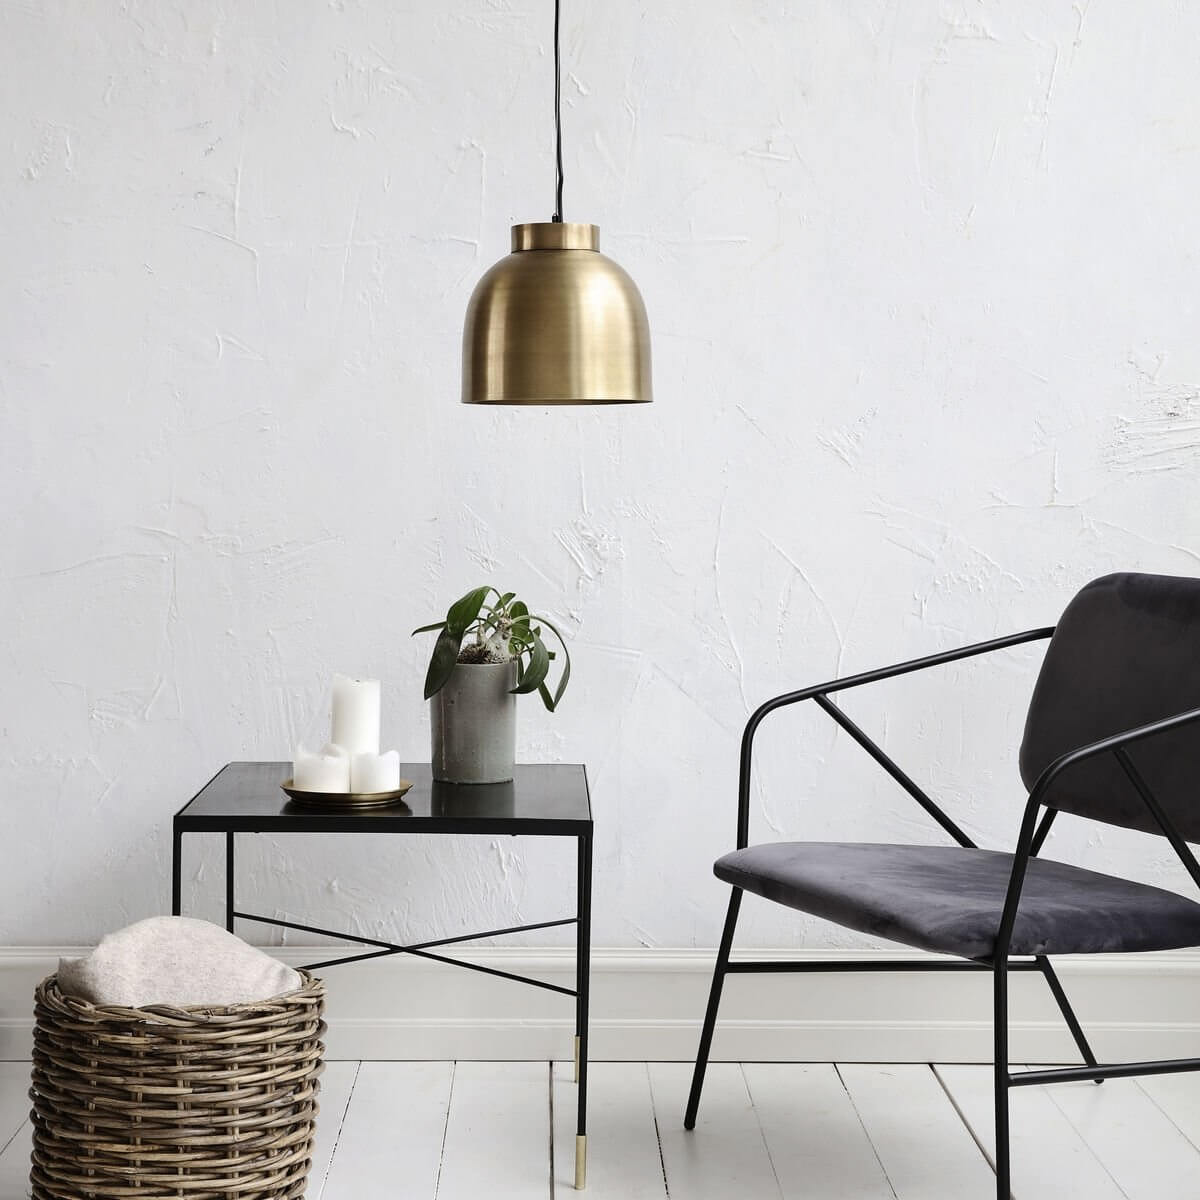 Brass Bowl Pendant Light - Small save 40%